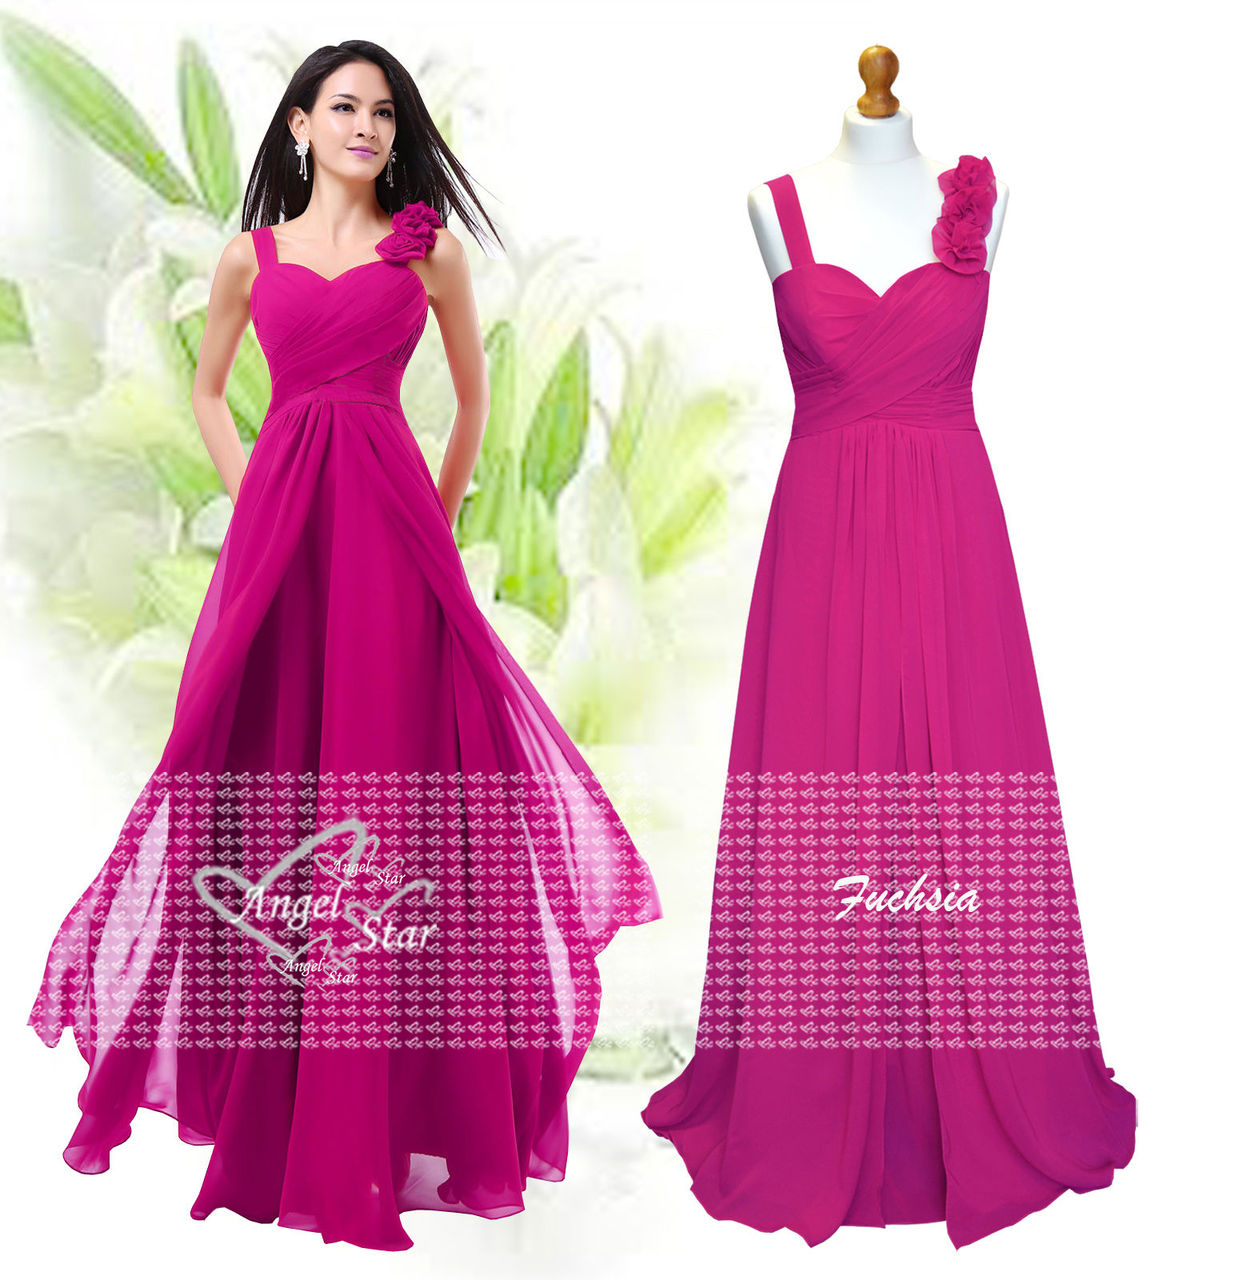 Formal Long Chiffon Prom Evening Party Ball Gown Bridesmaid Dresses Size 6-24